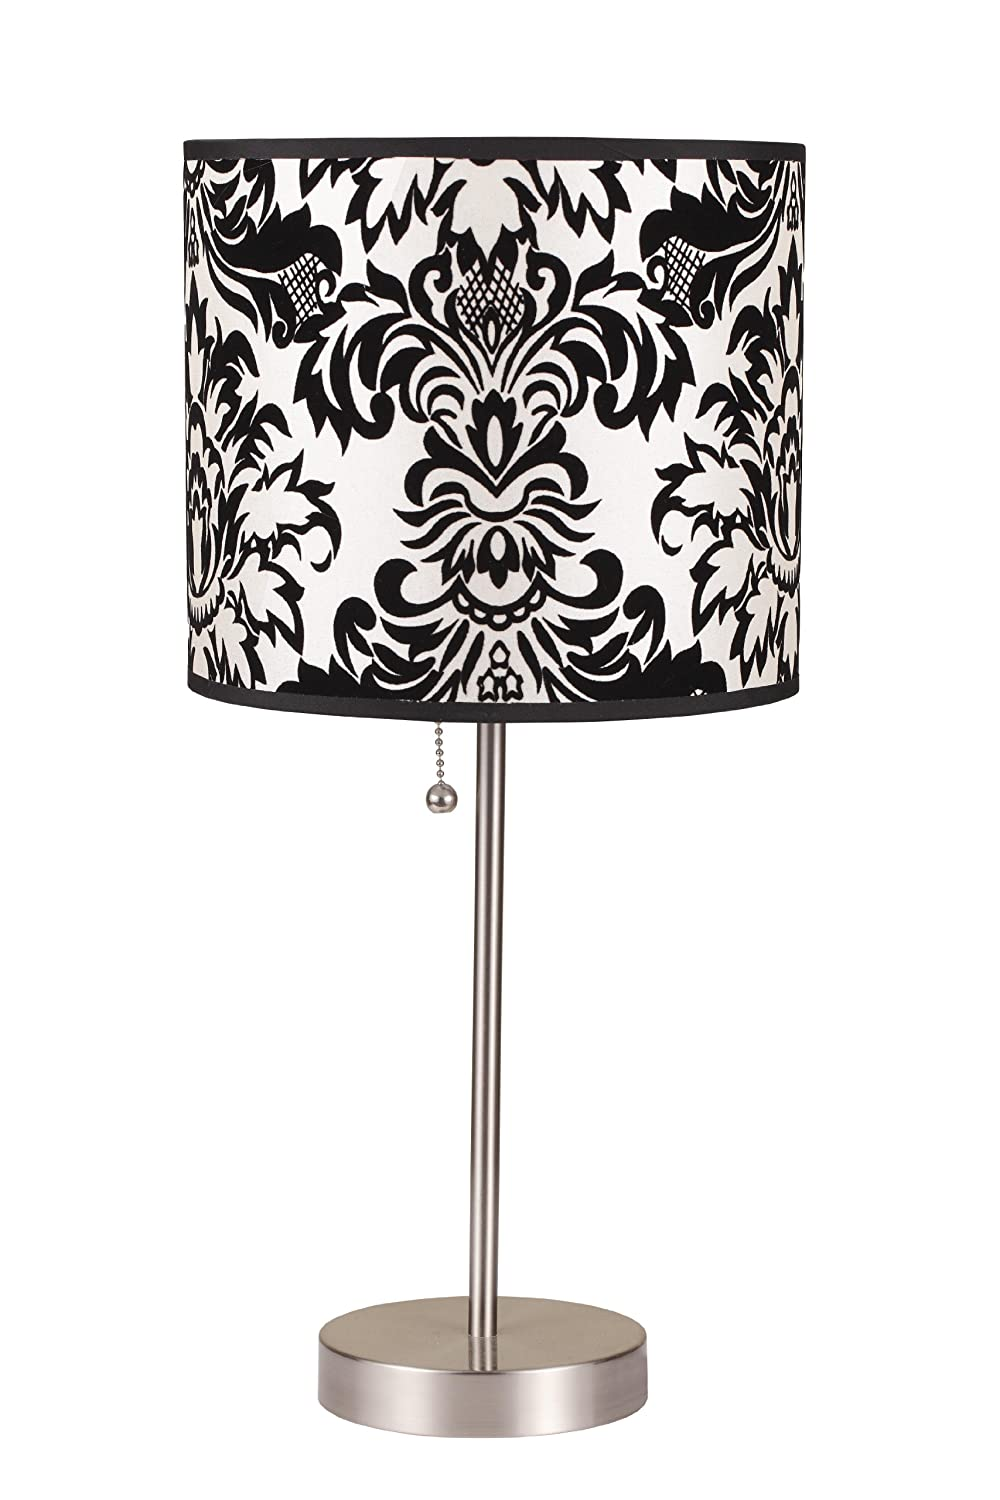 Amazon.com: ORE International 8312B 19 Inch Brushed Steel Table Lamp With  Damask Print Shade: Home U0026 Kitchen